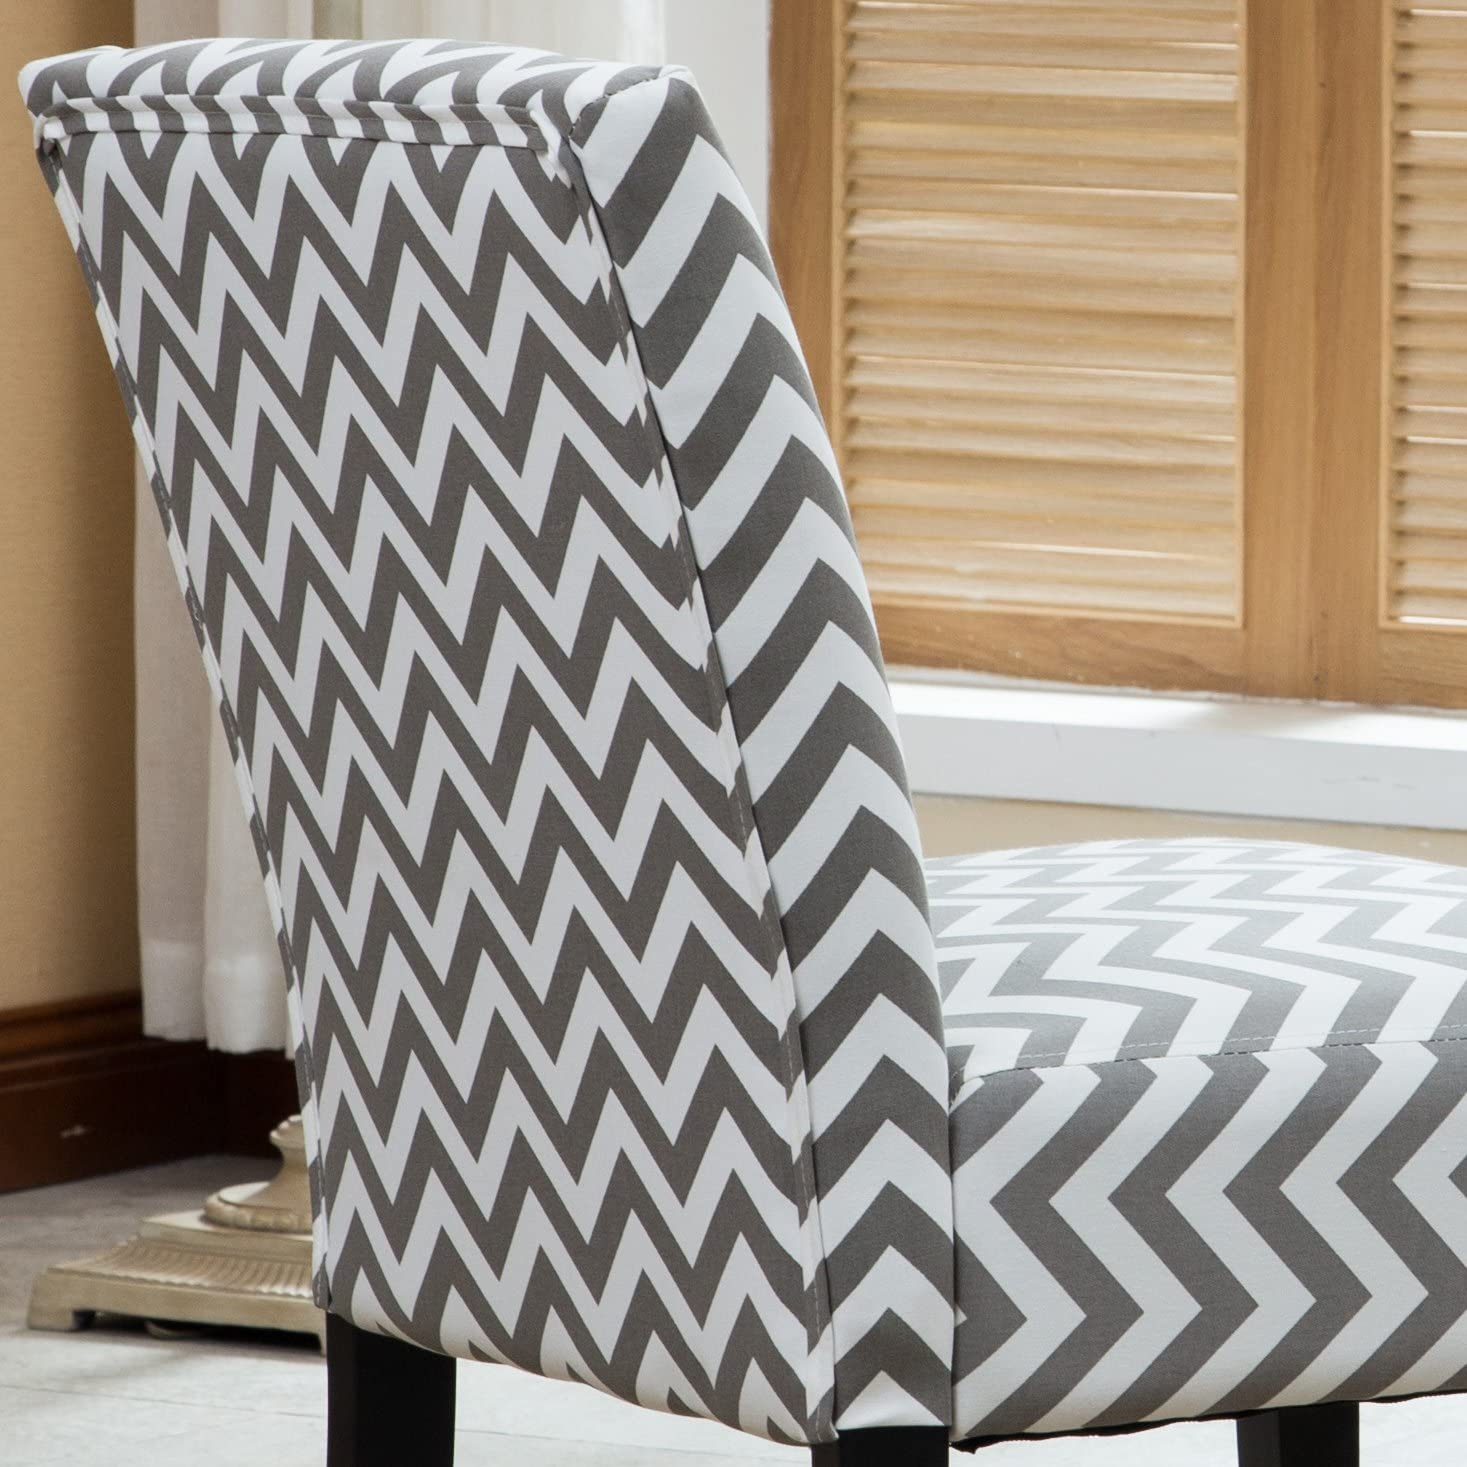 Roundhill Furniture Botticelli Grey Wave Print Fabric Armless Contemporary Accent Chair, Single: Kitchen & Dining